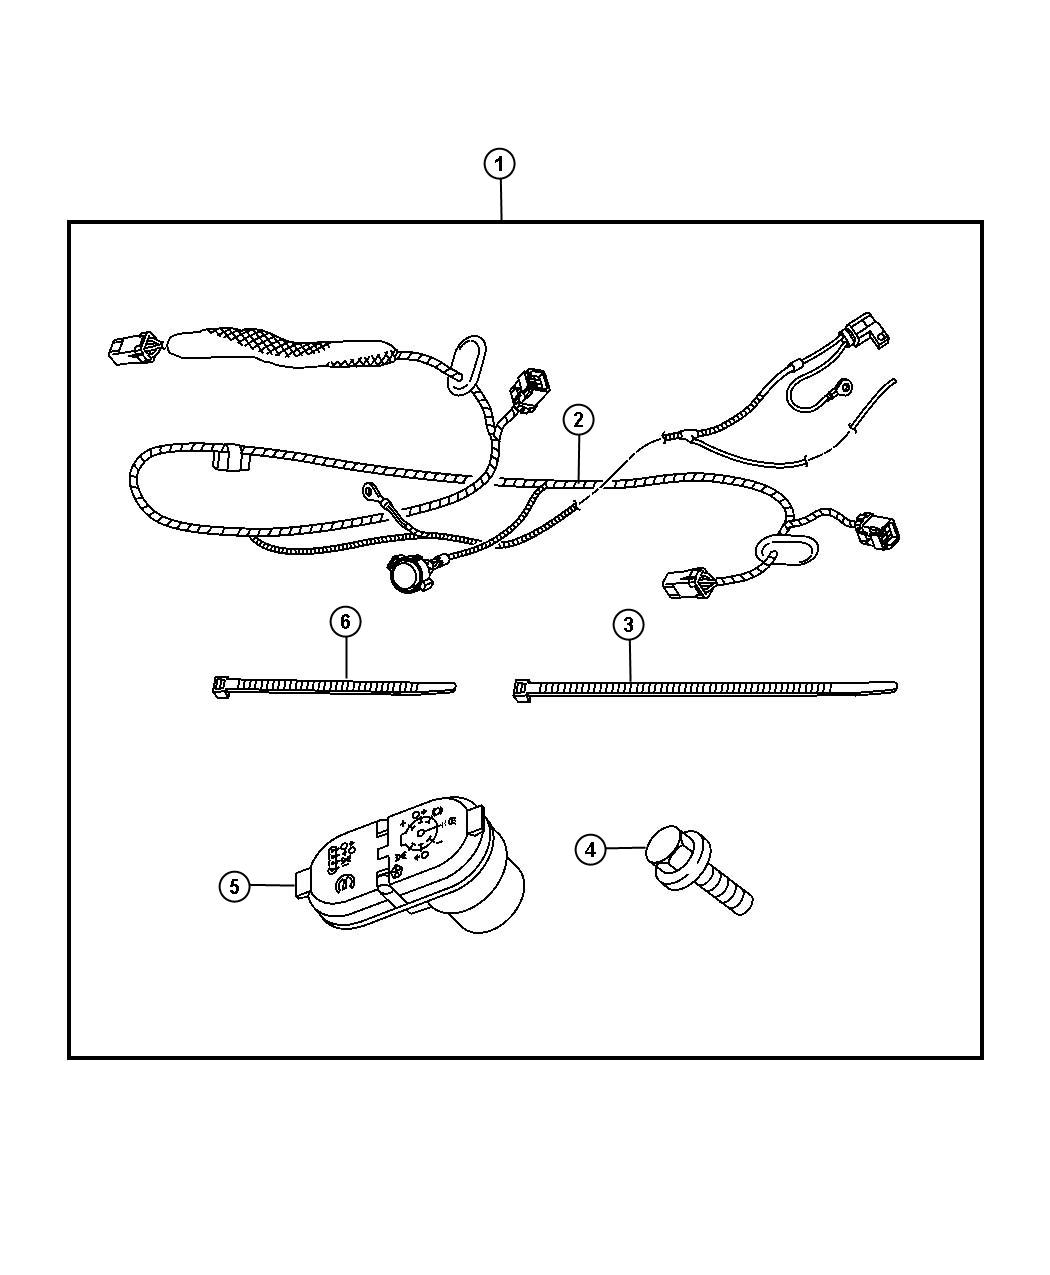 Tow Connector Wiring Diagram